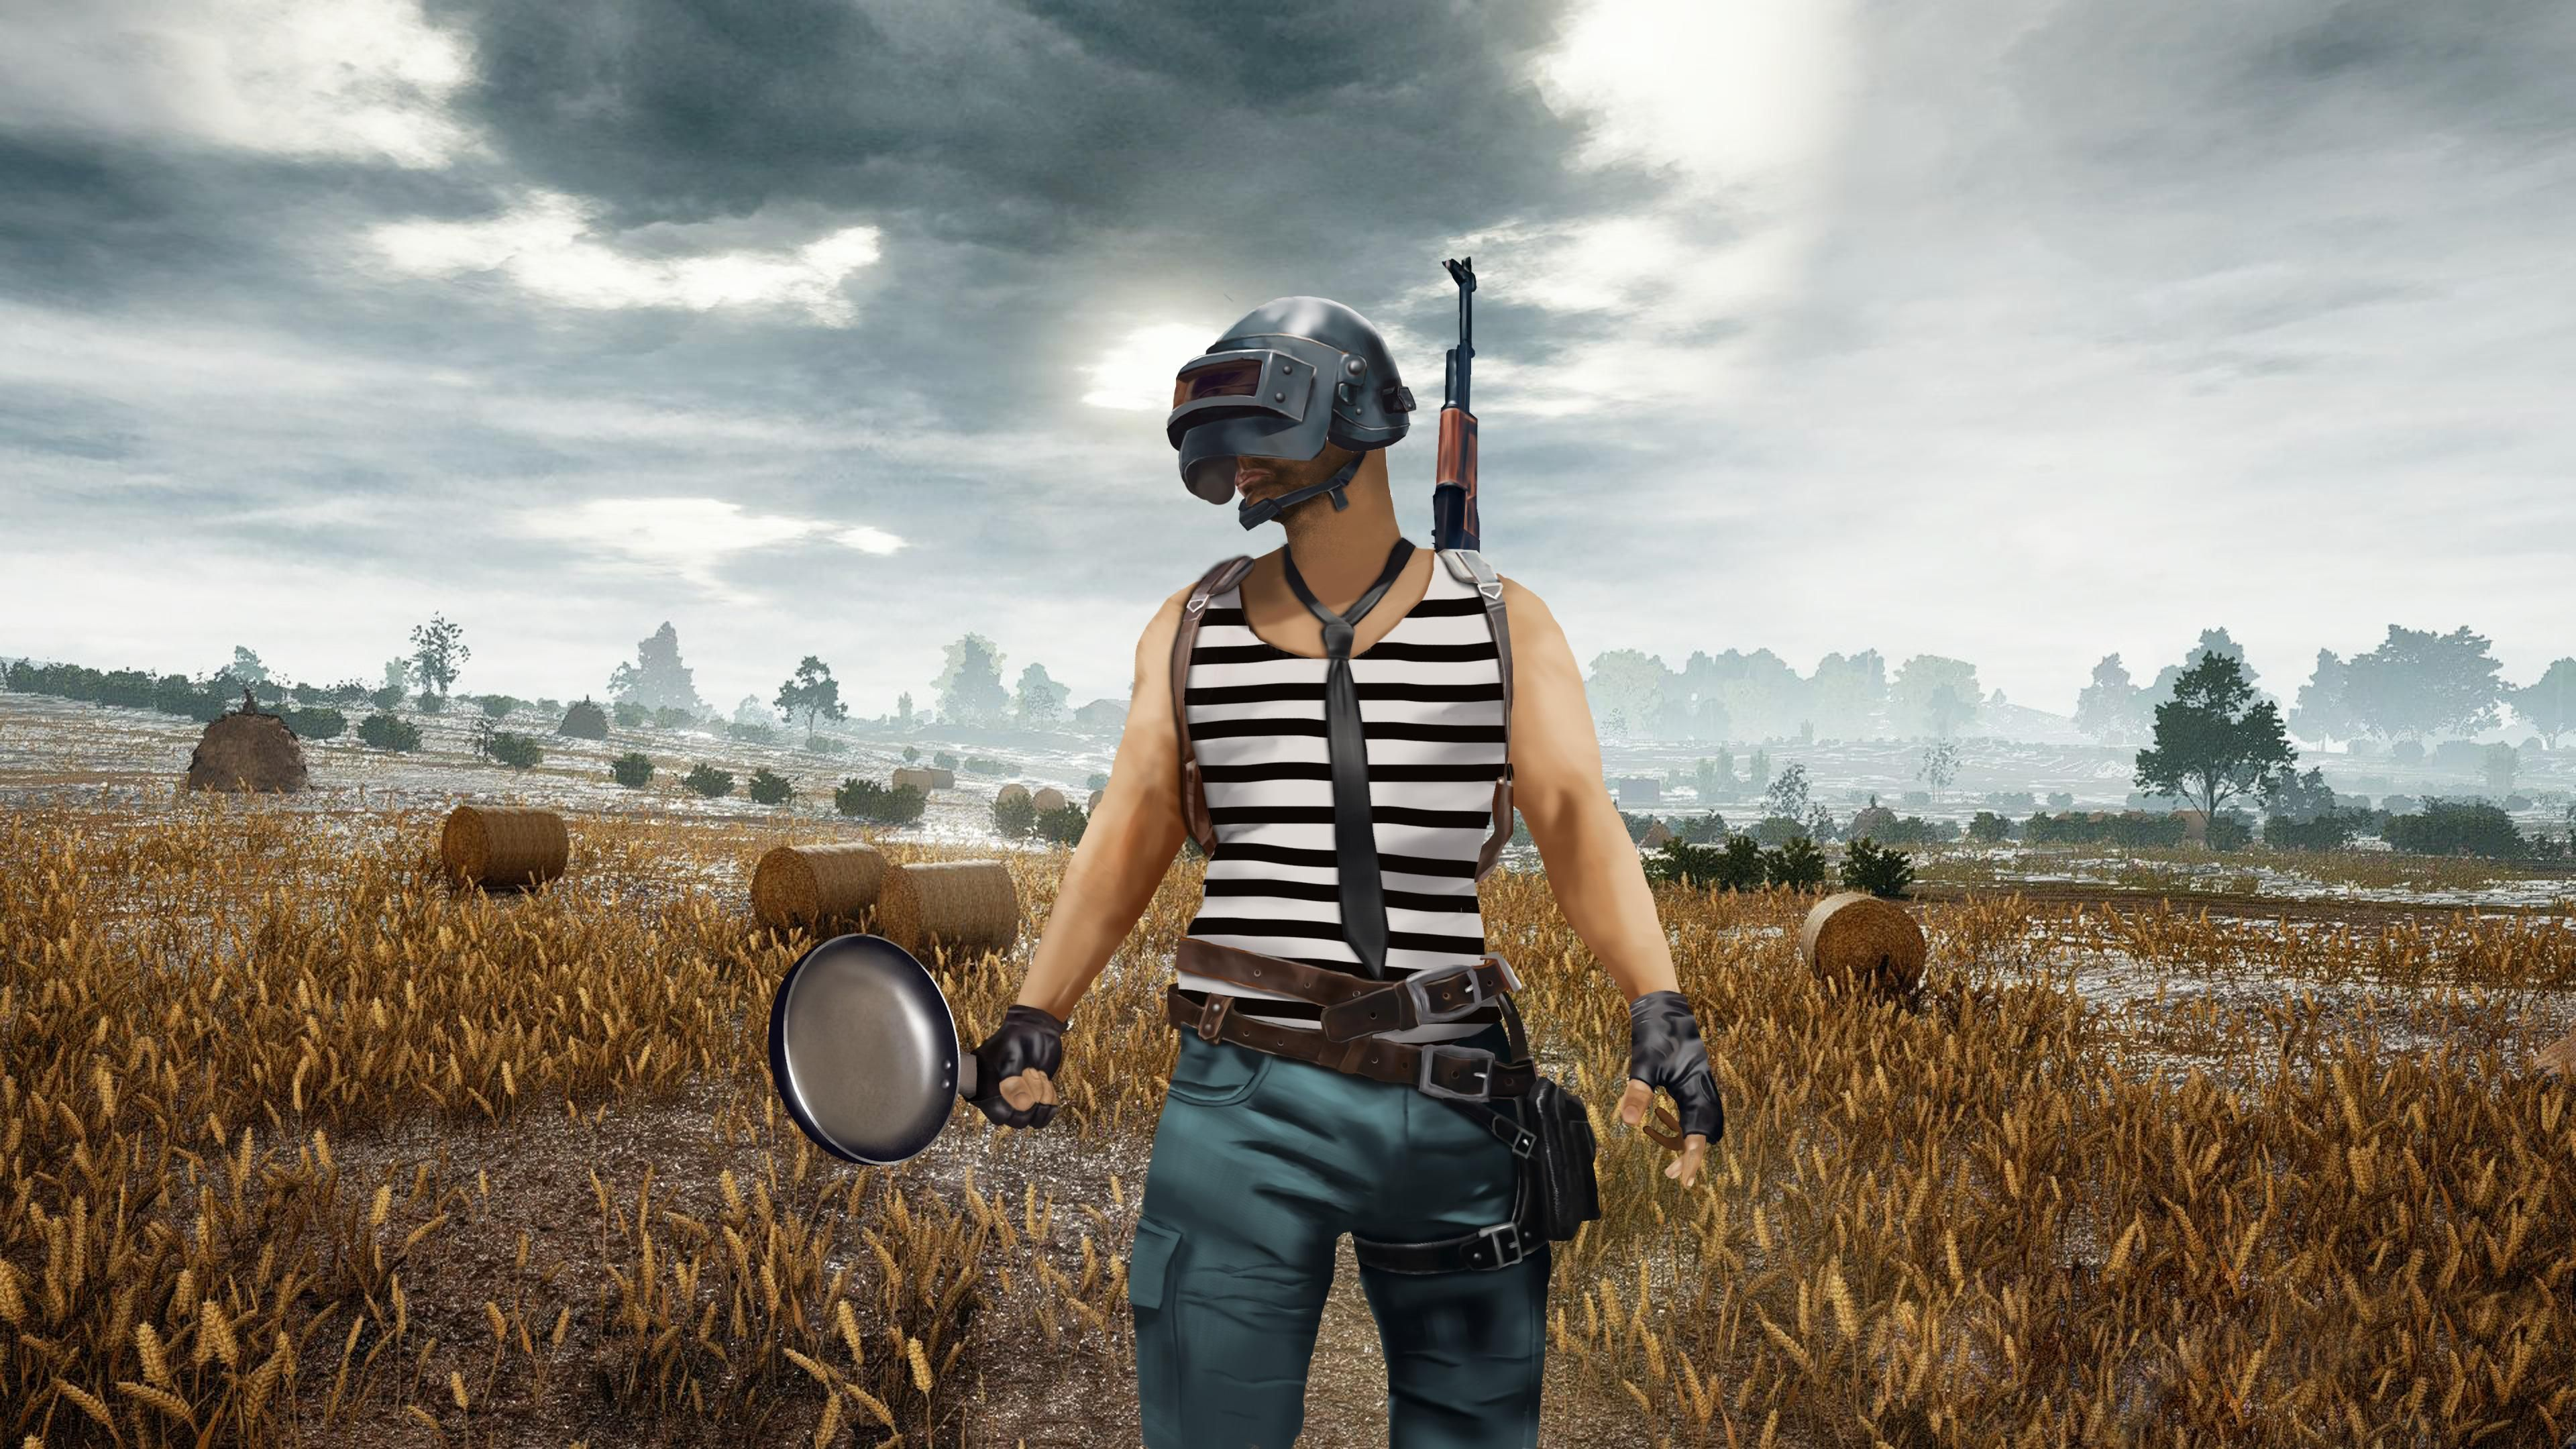 3840x2160 Pubg Wallpapers Wallpaper Cave Hd Wallpapers For Pc Wallpaper Pc Desktop Wallpapers Backgrounds